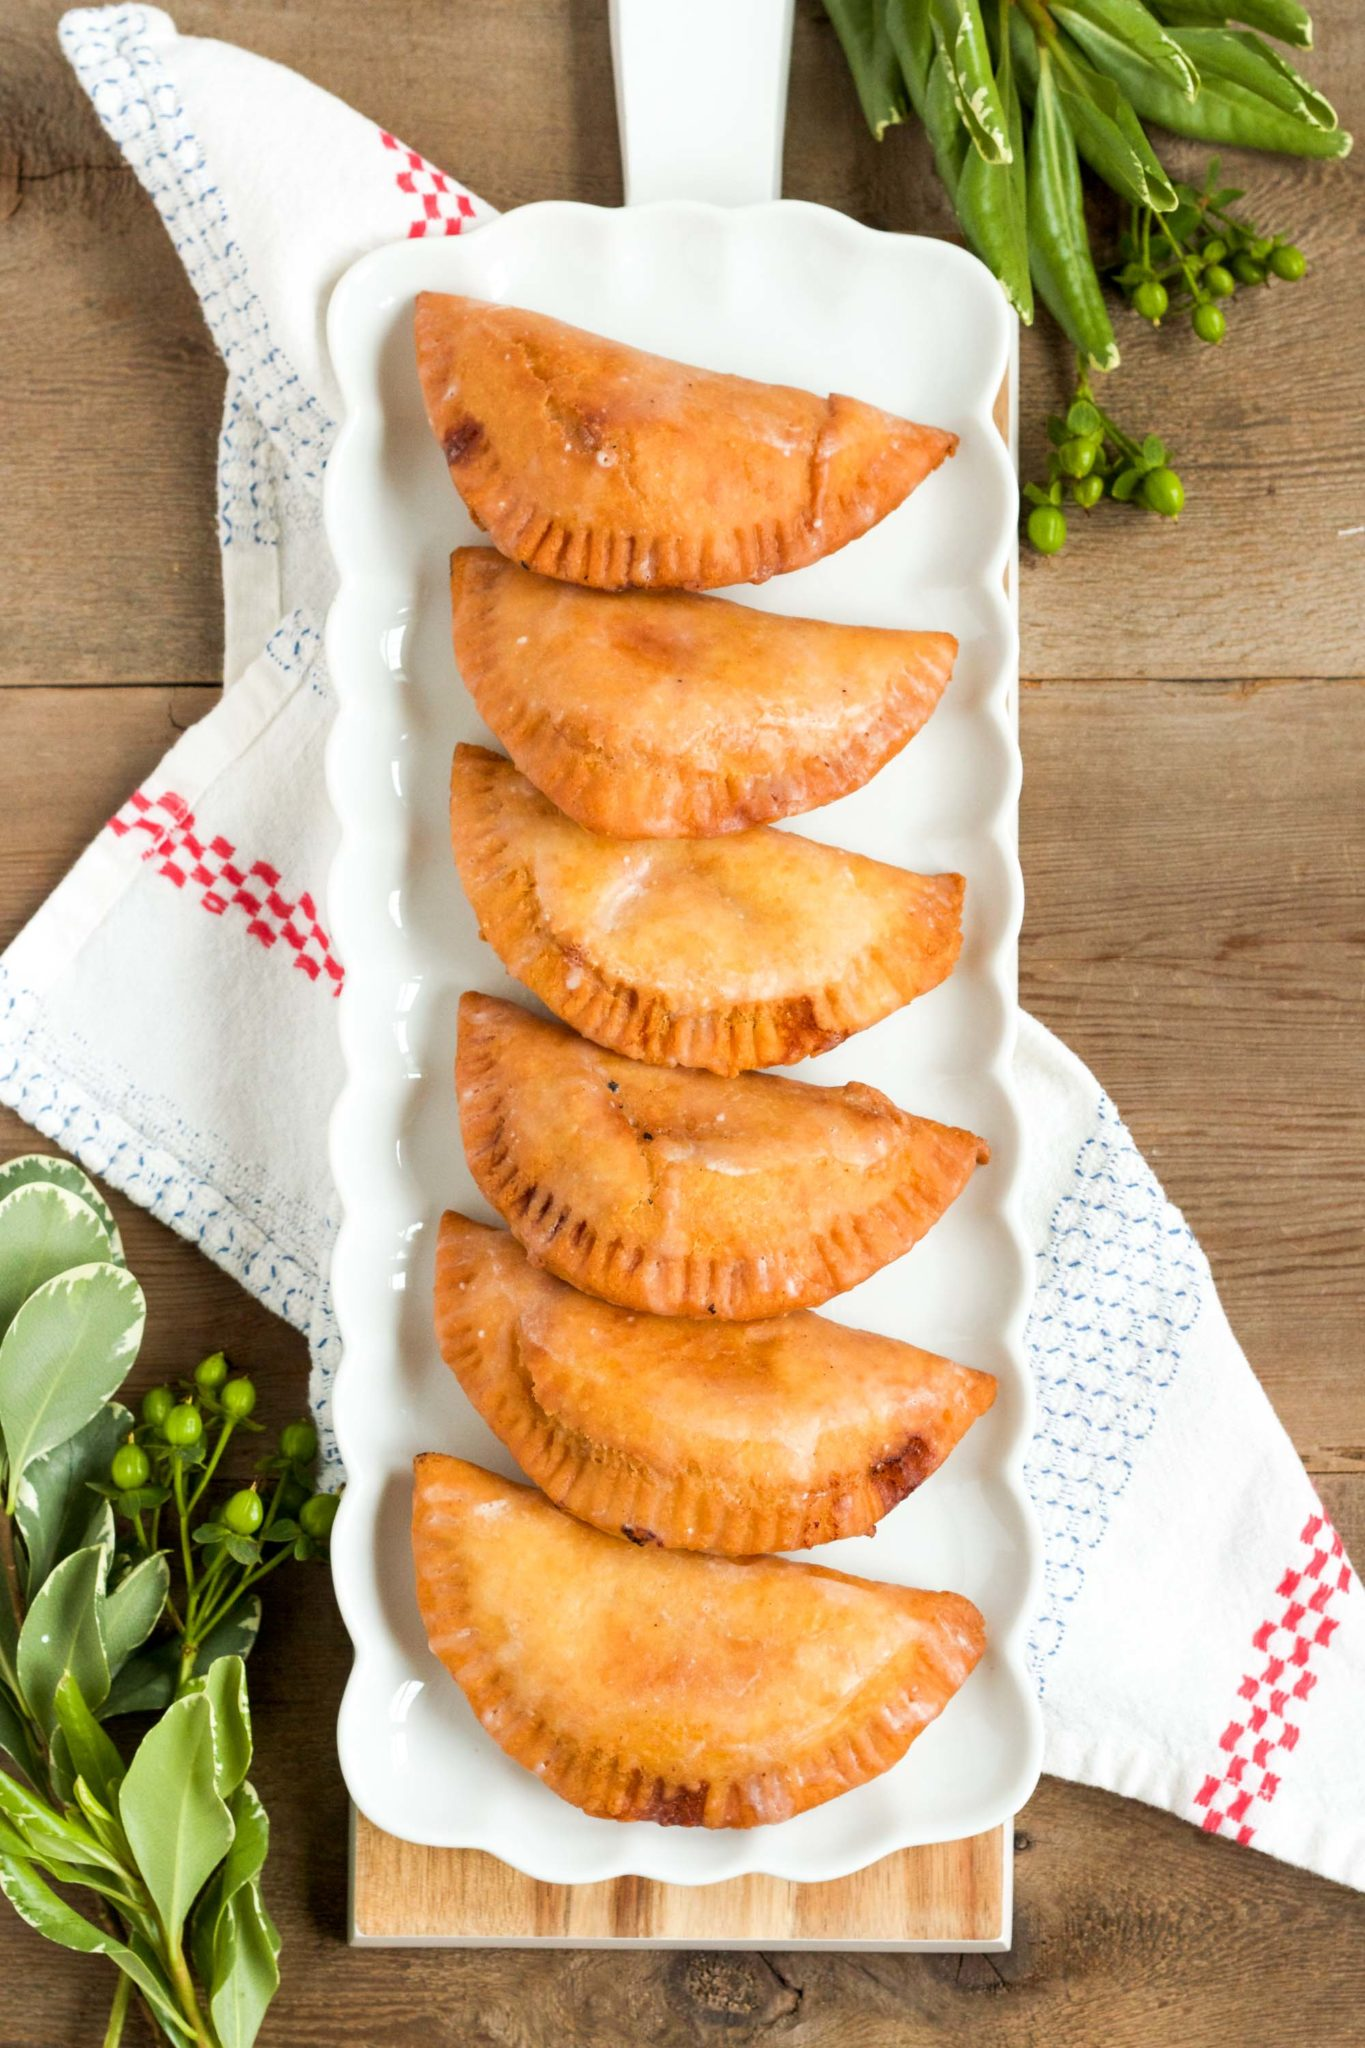 These delicious fried hand pies are filled with homemade peach jam, and are topped with a sweet, sugary glaze!